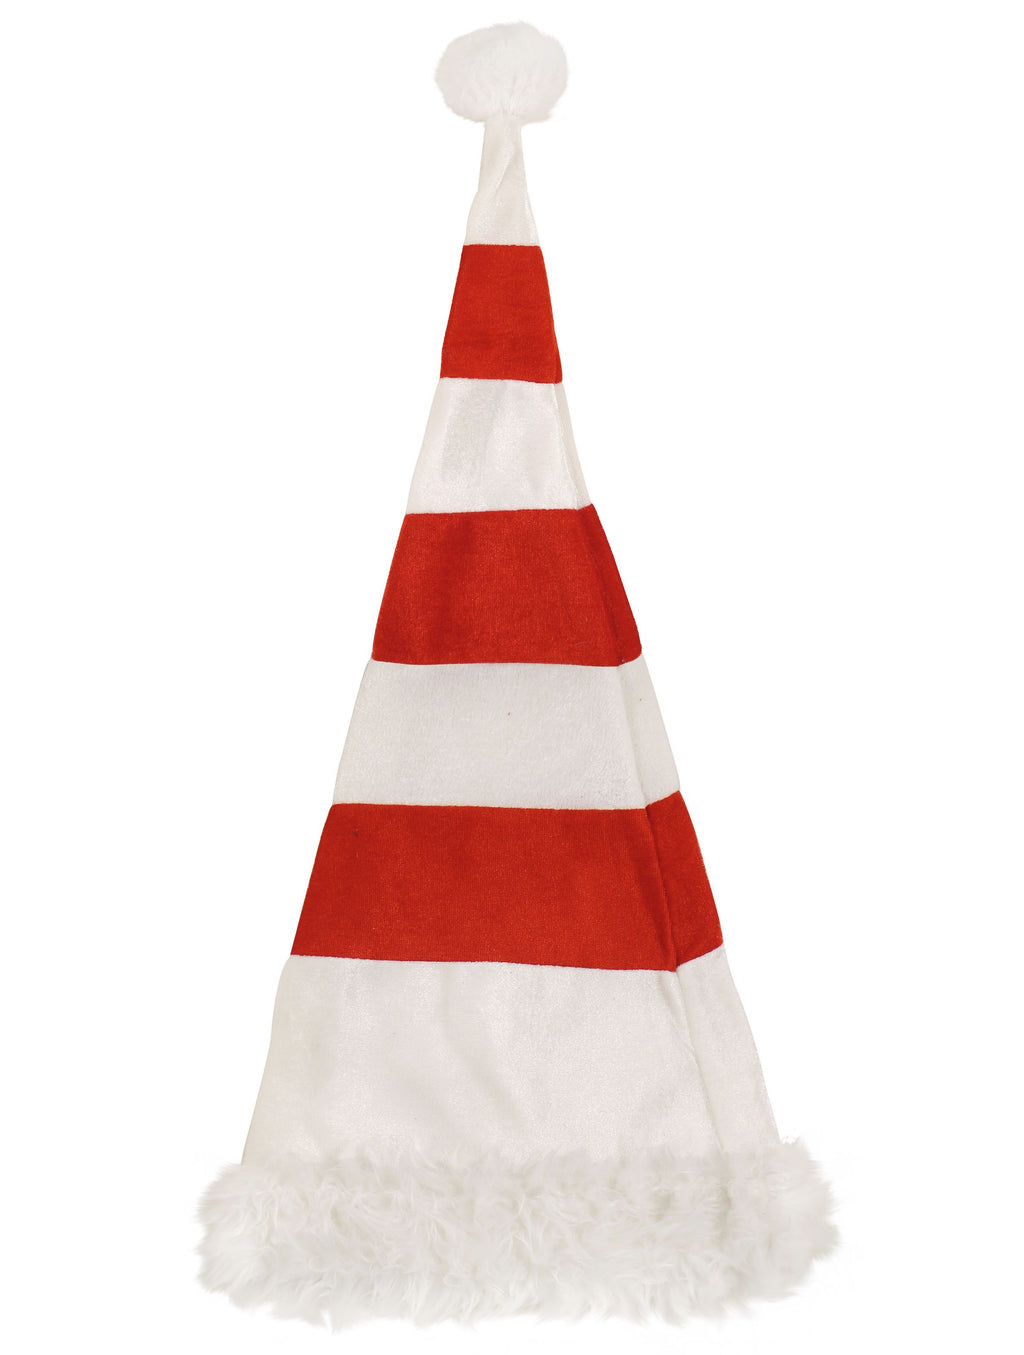 Tall Christmas Hat - Red & White - Party Perfecto